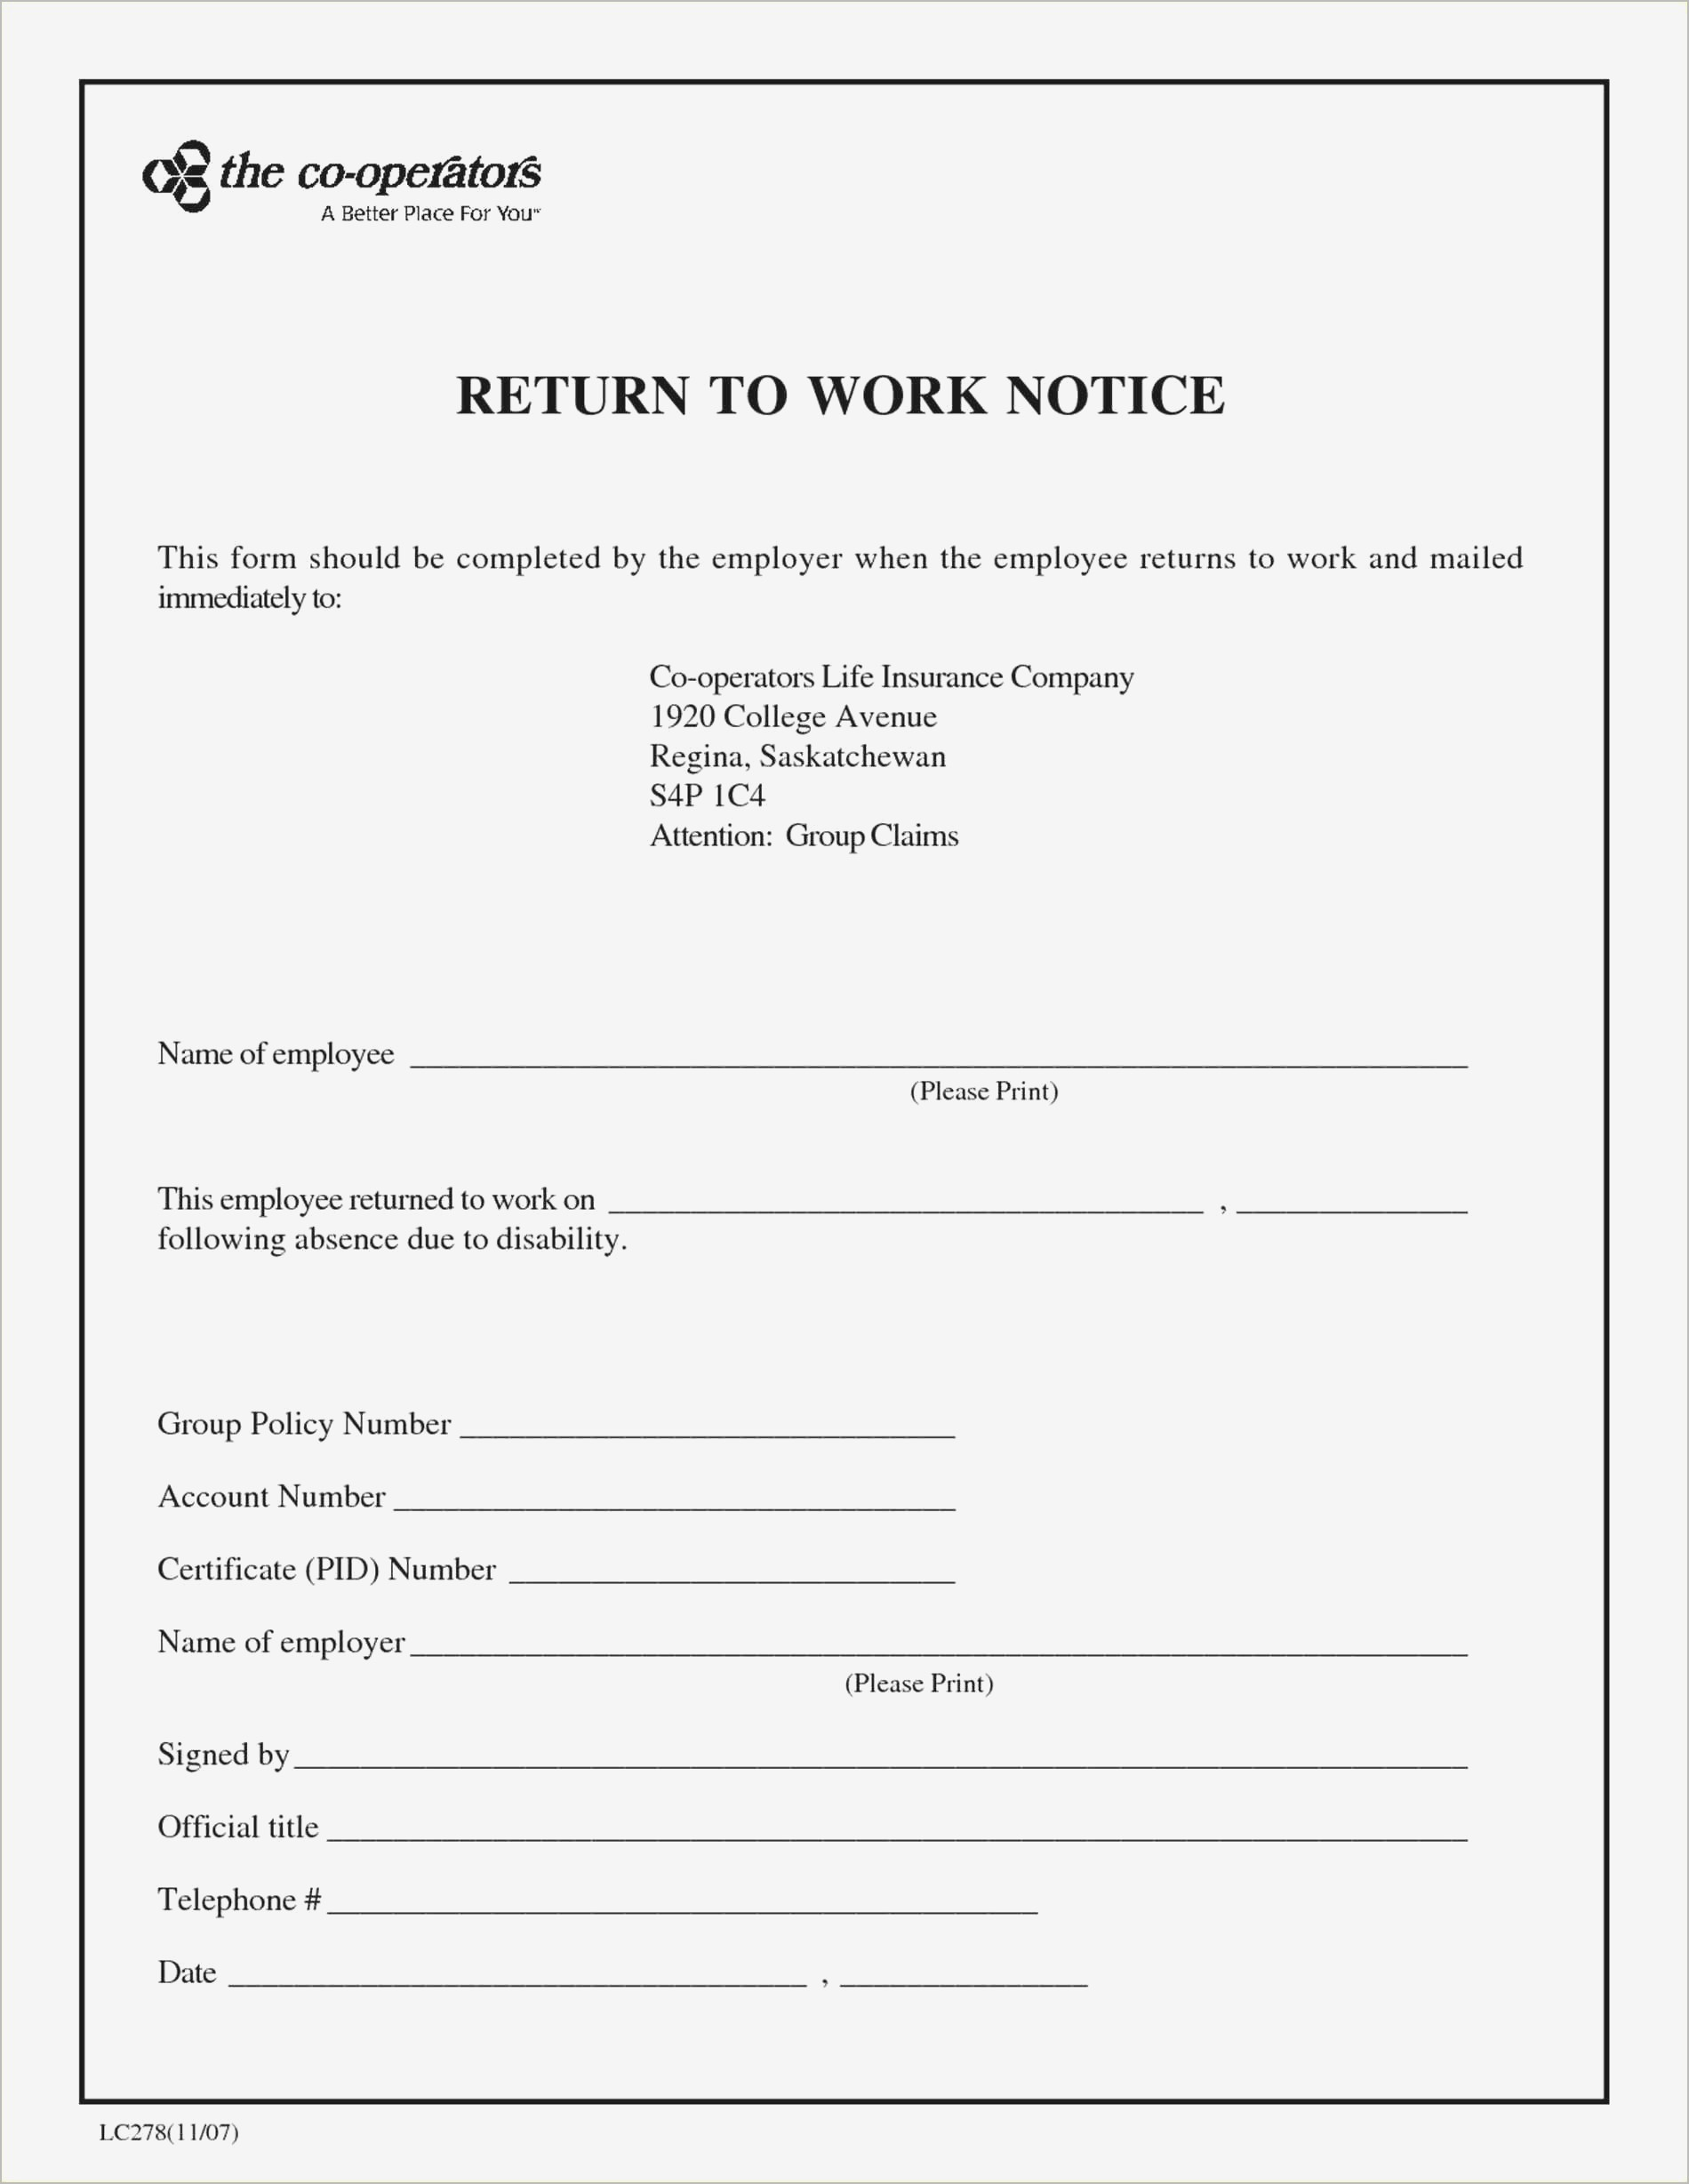 007 Template Ideas Return To Work Doctors Note Letter From Doctor - Doctor Notes For Free Printable